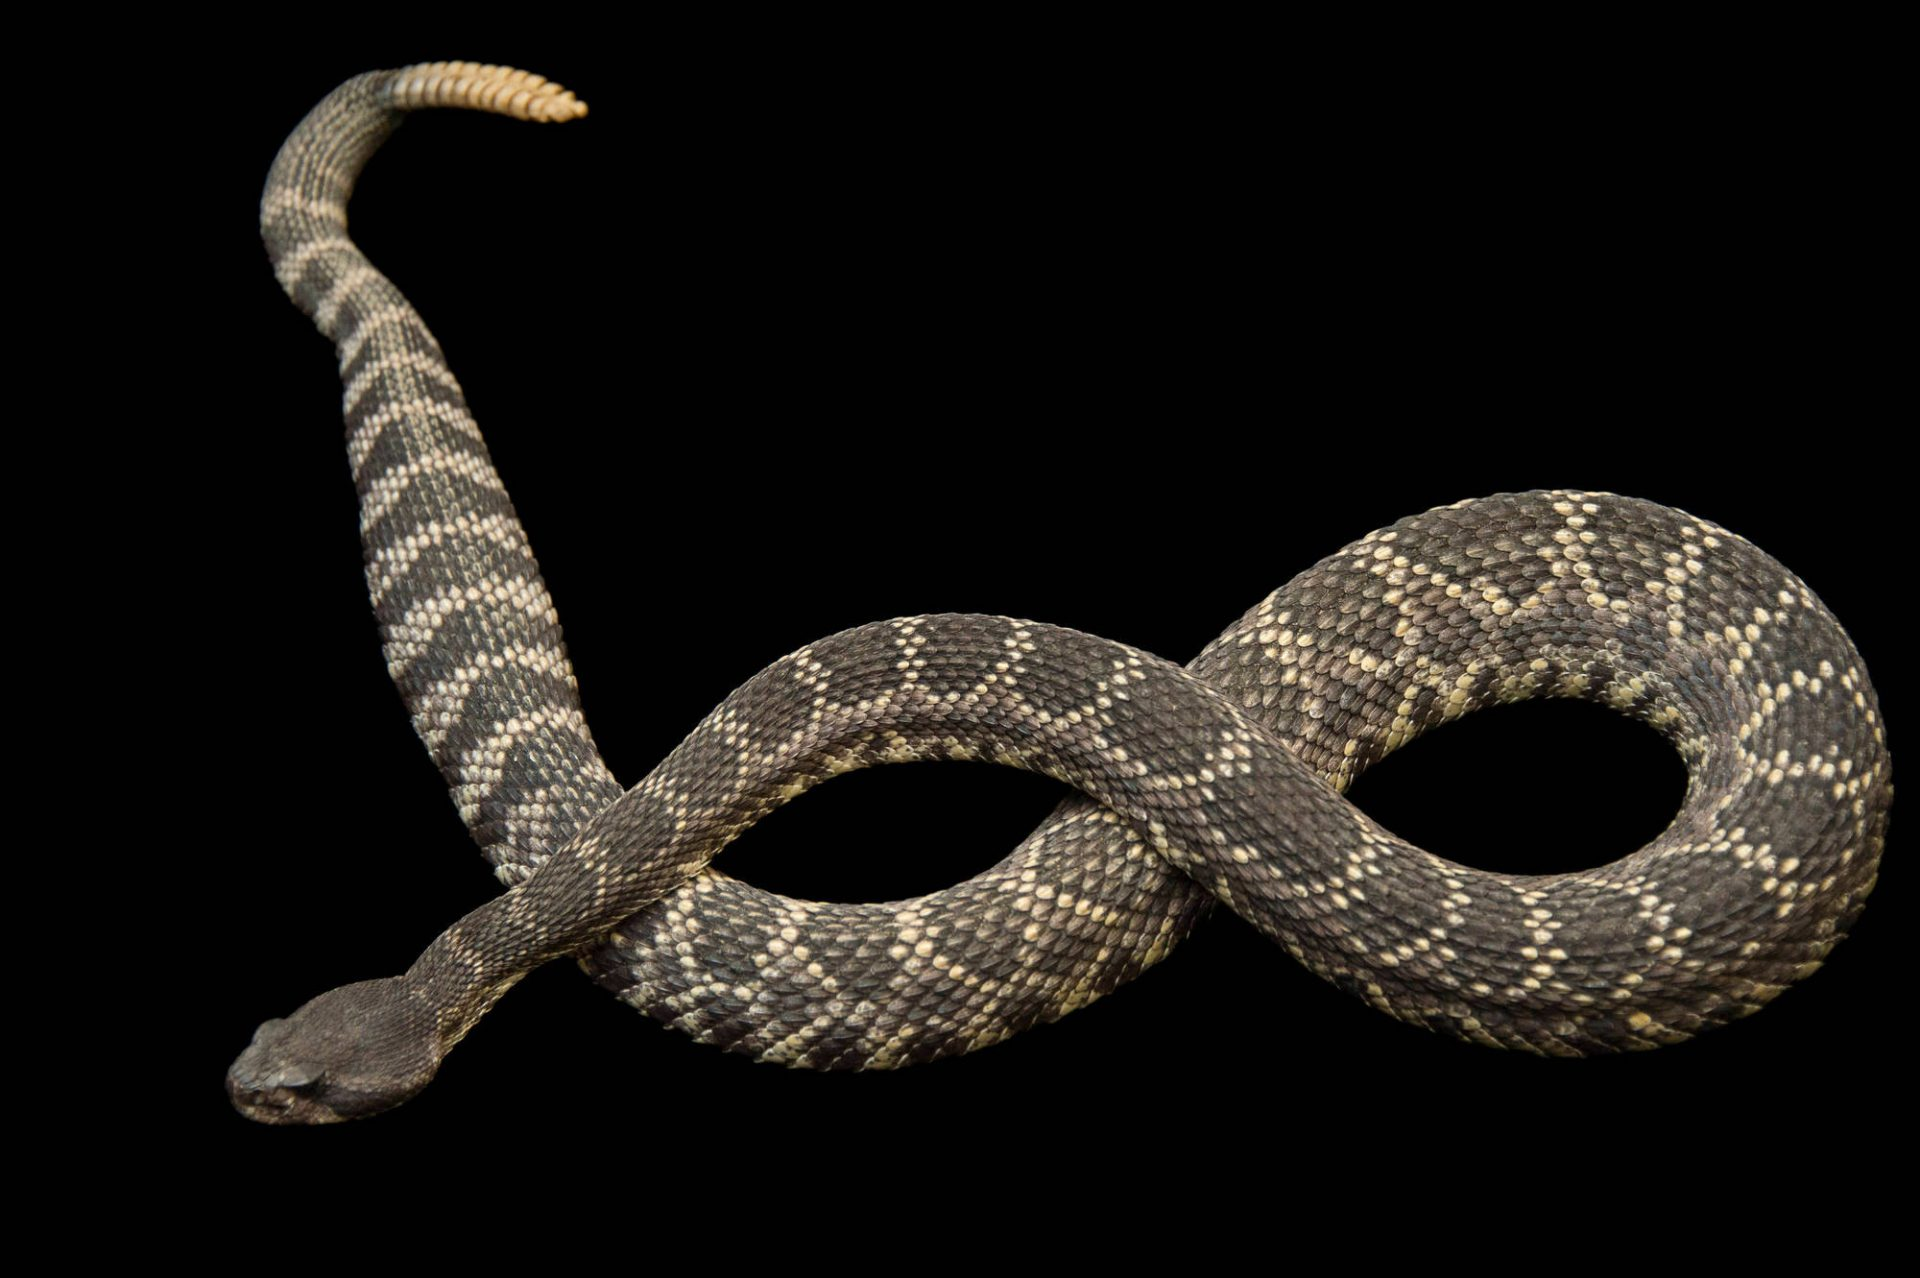 Picture of a Southern pacific rattlesnake (Crotalus oreganus helleri) at the Santa Barbara Zoo.